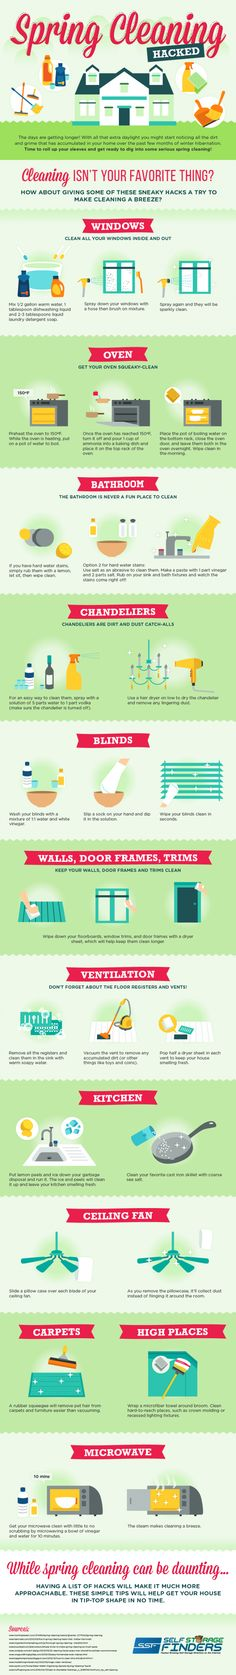 It's that time of year again when we throw open the windows and sweep away the grime of winter in the ritual of spring cleaning.Here are all the hacks you need to make the yearly ritual go as smoothly (and quickly) as possible.Via Self Storage Finders.Lifehacks infographics.